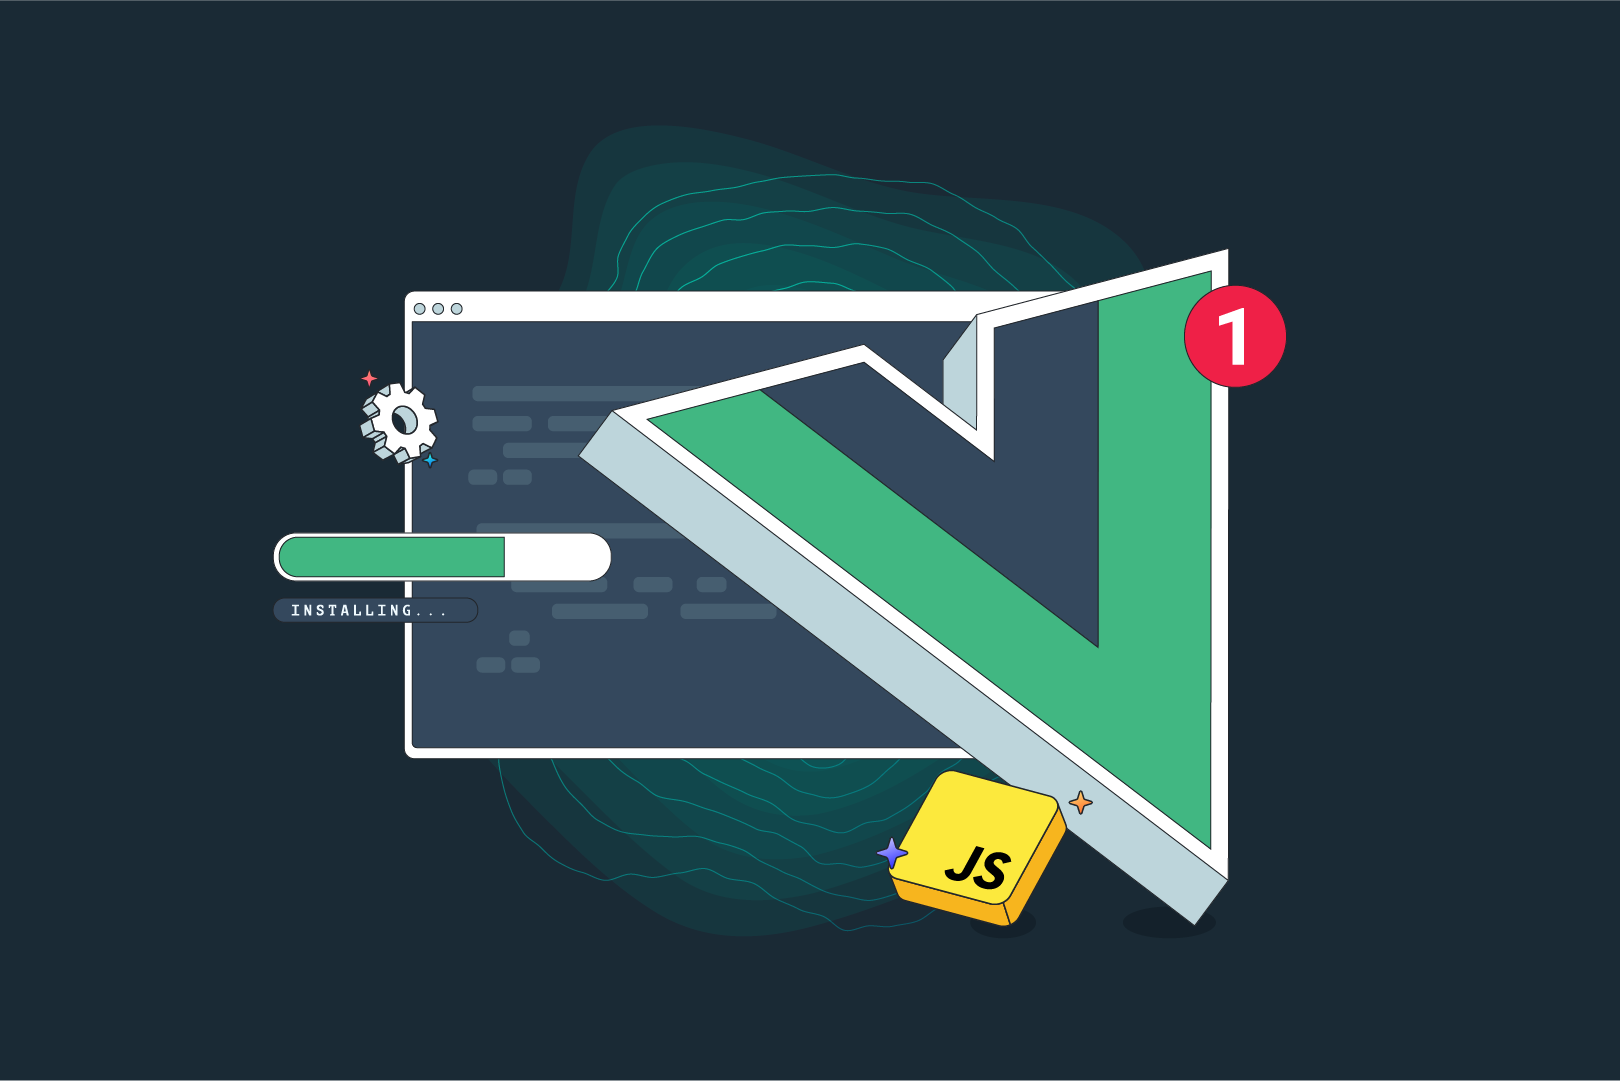 New Vue js features and breaking changes – overview of Vue 3